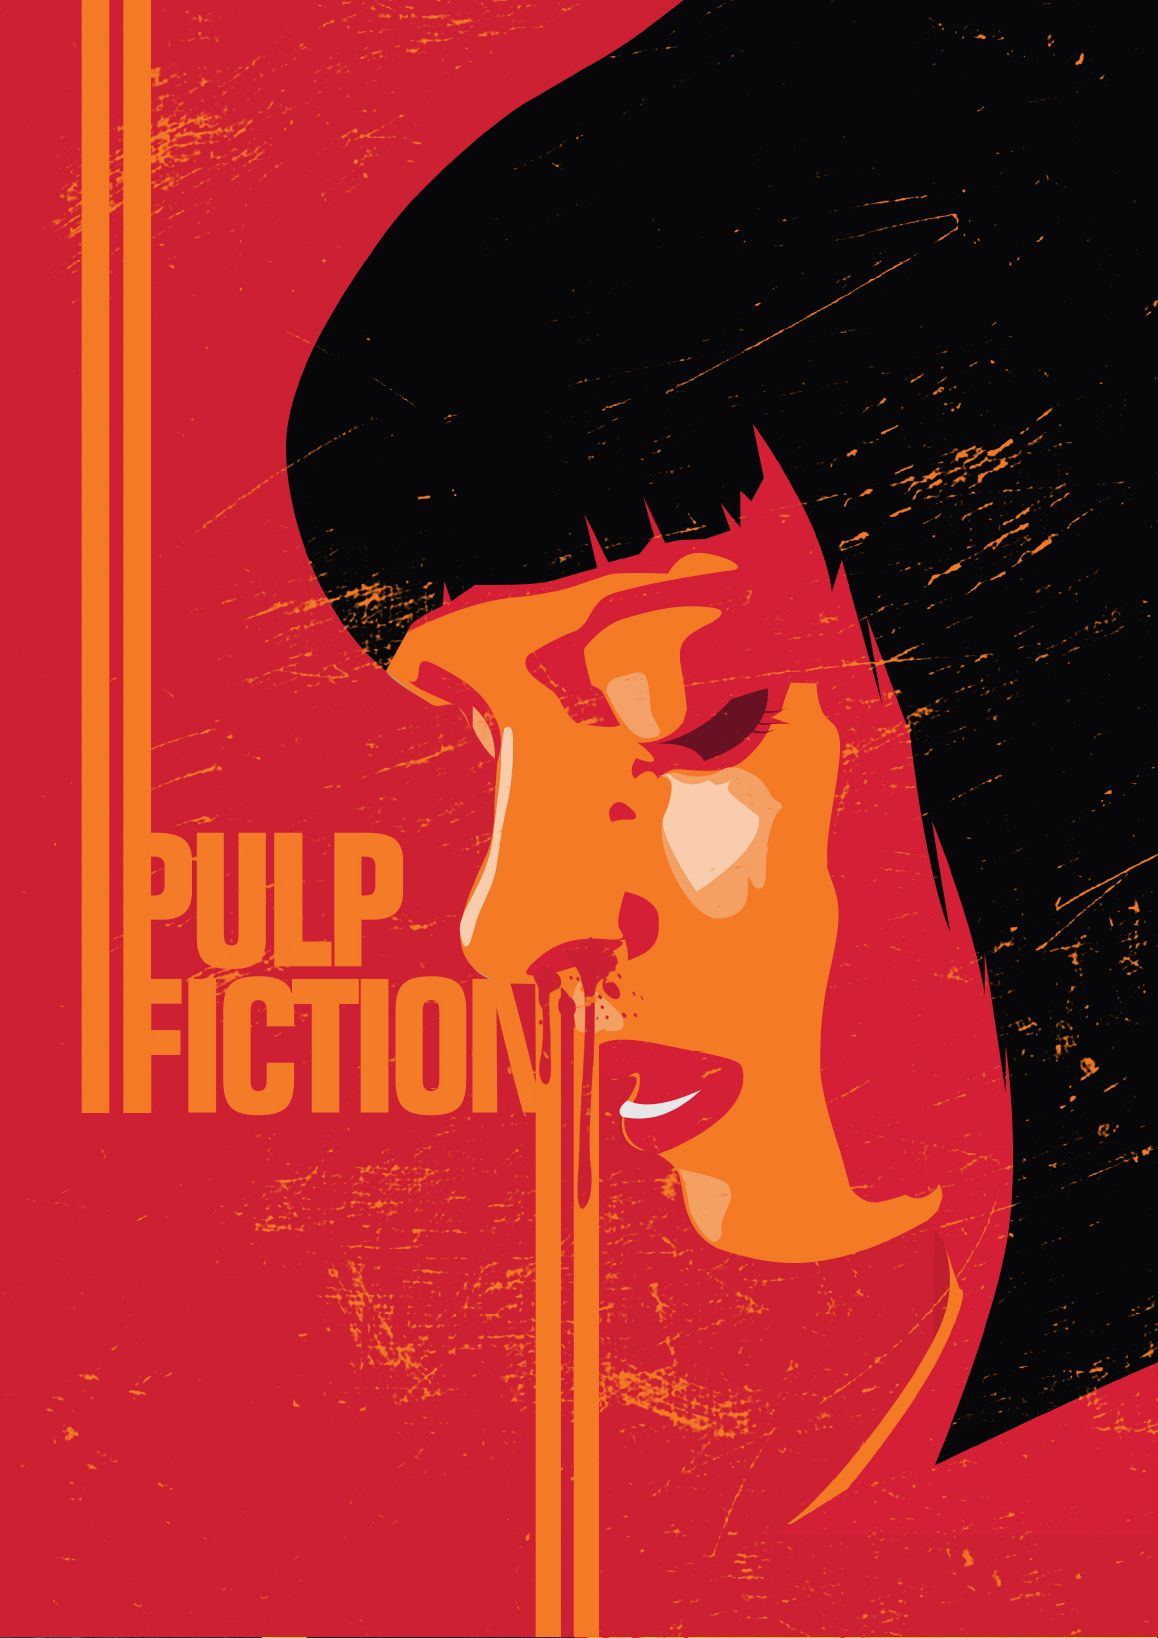 Pulp Fiction Alternative Movie Poster Pulp Fiction Pop Art